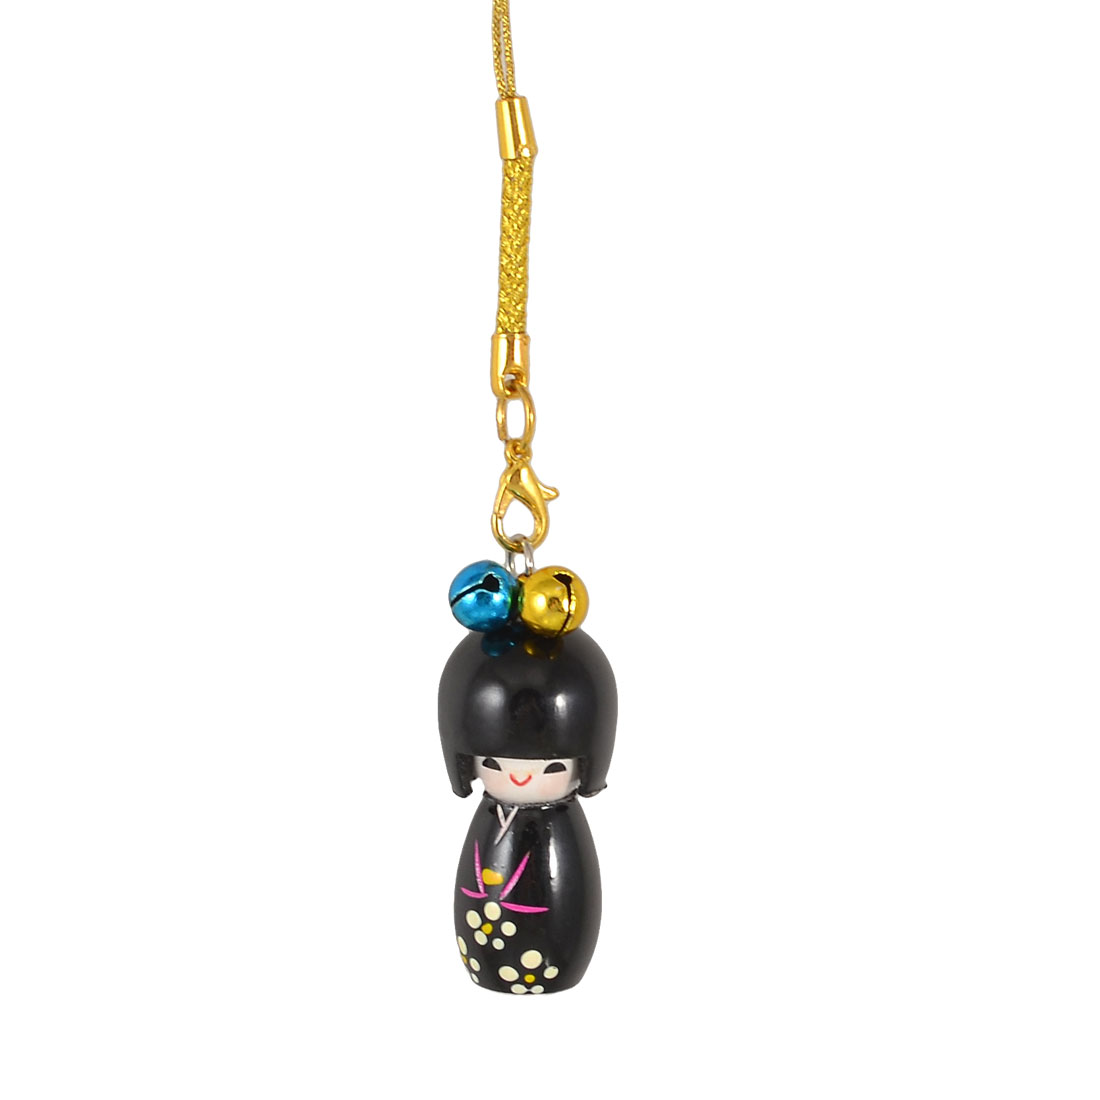 Gold Tone String Black Japanese Kokeshi Doll Pendant Mobile Phone Charm